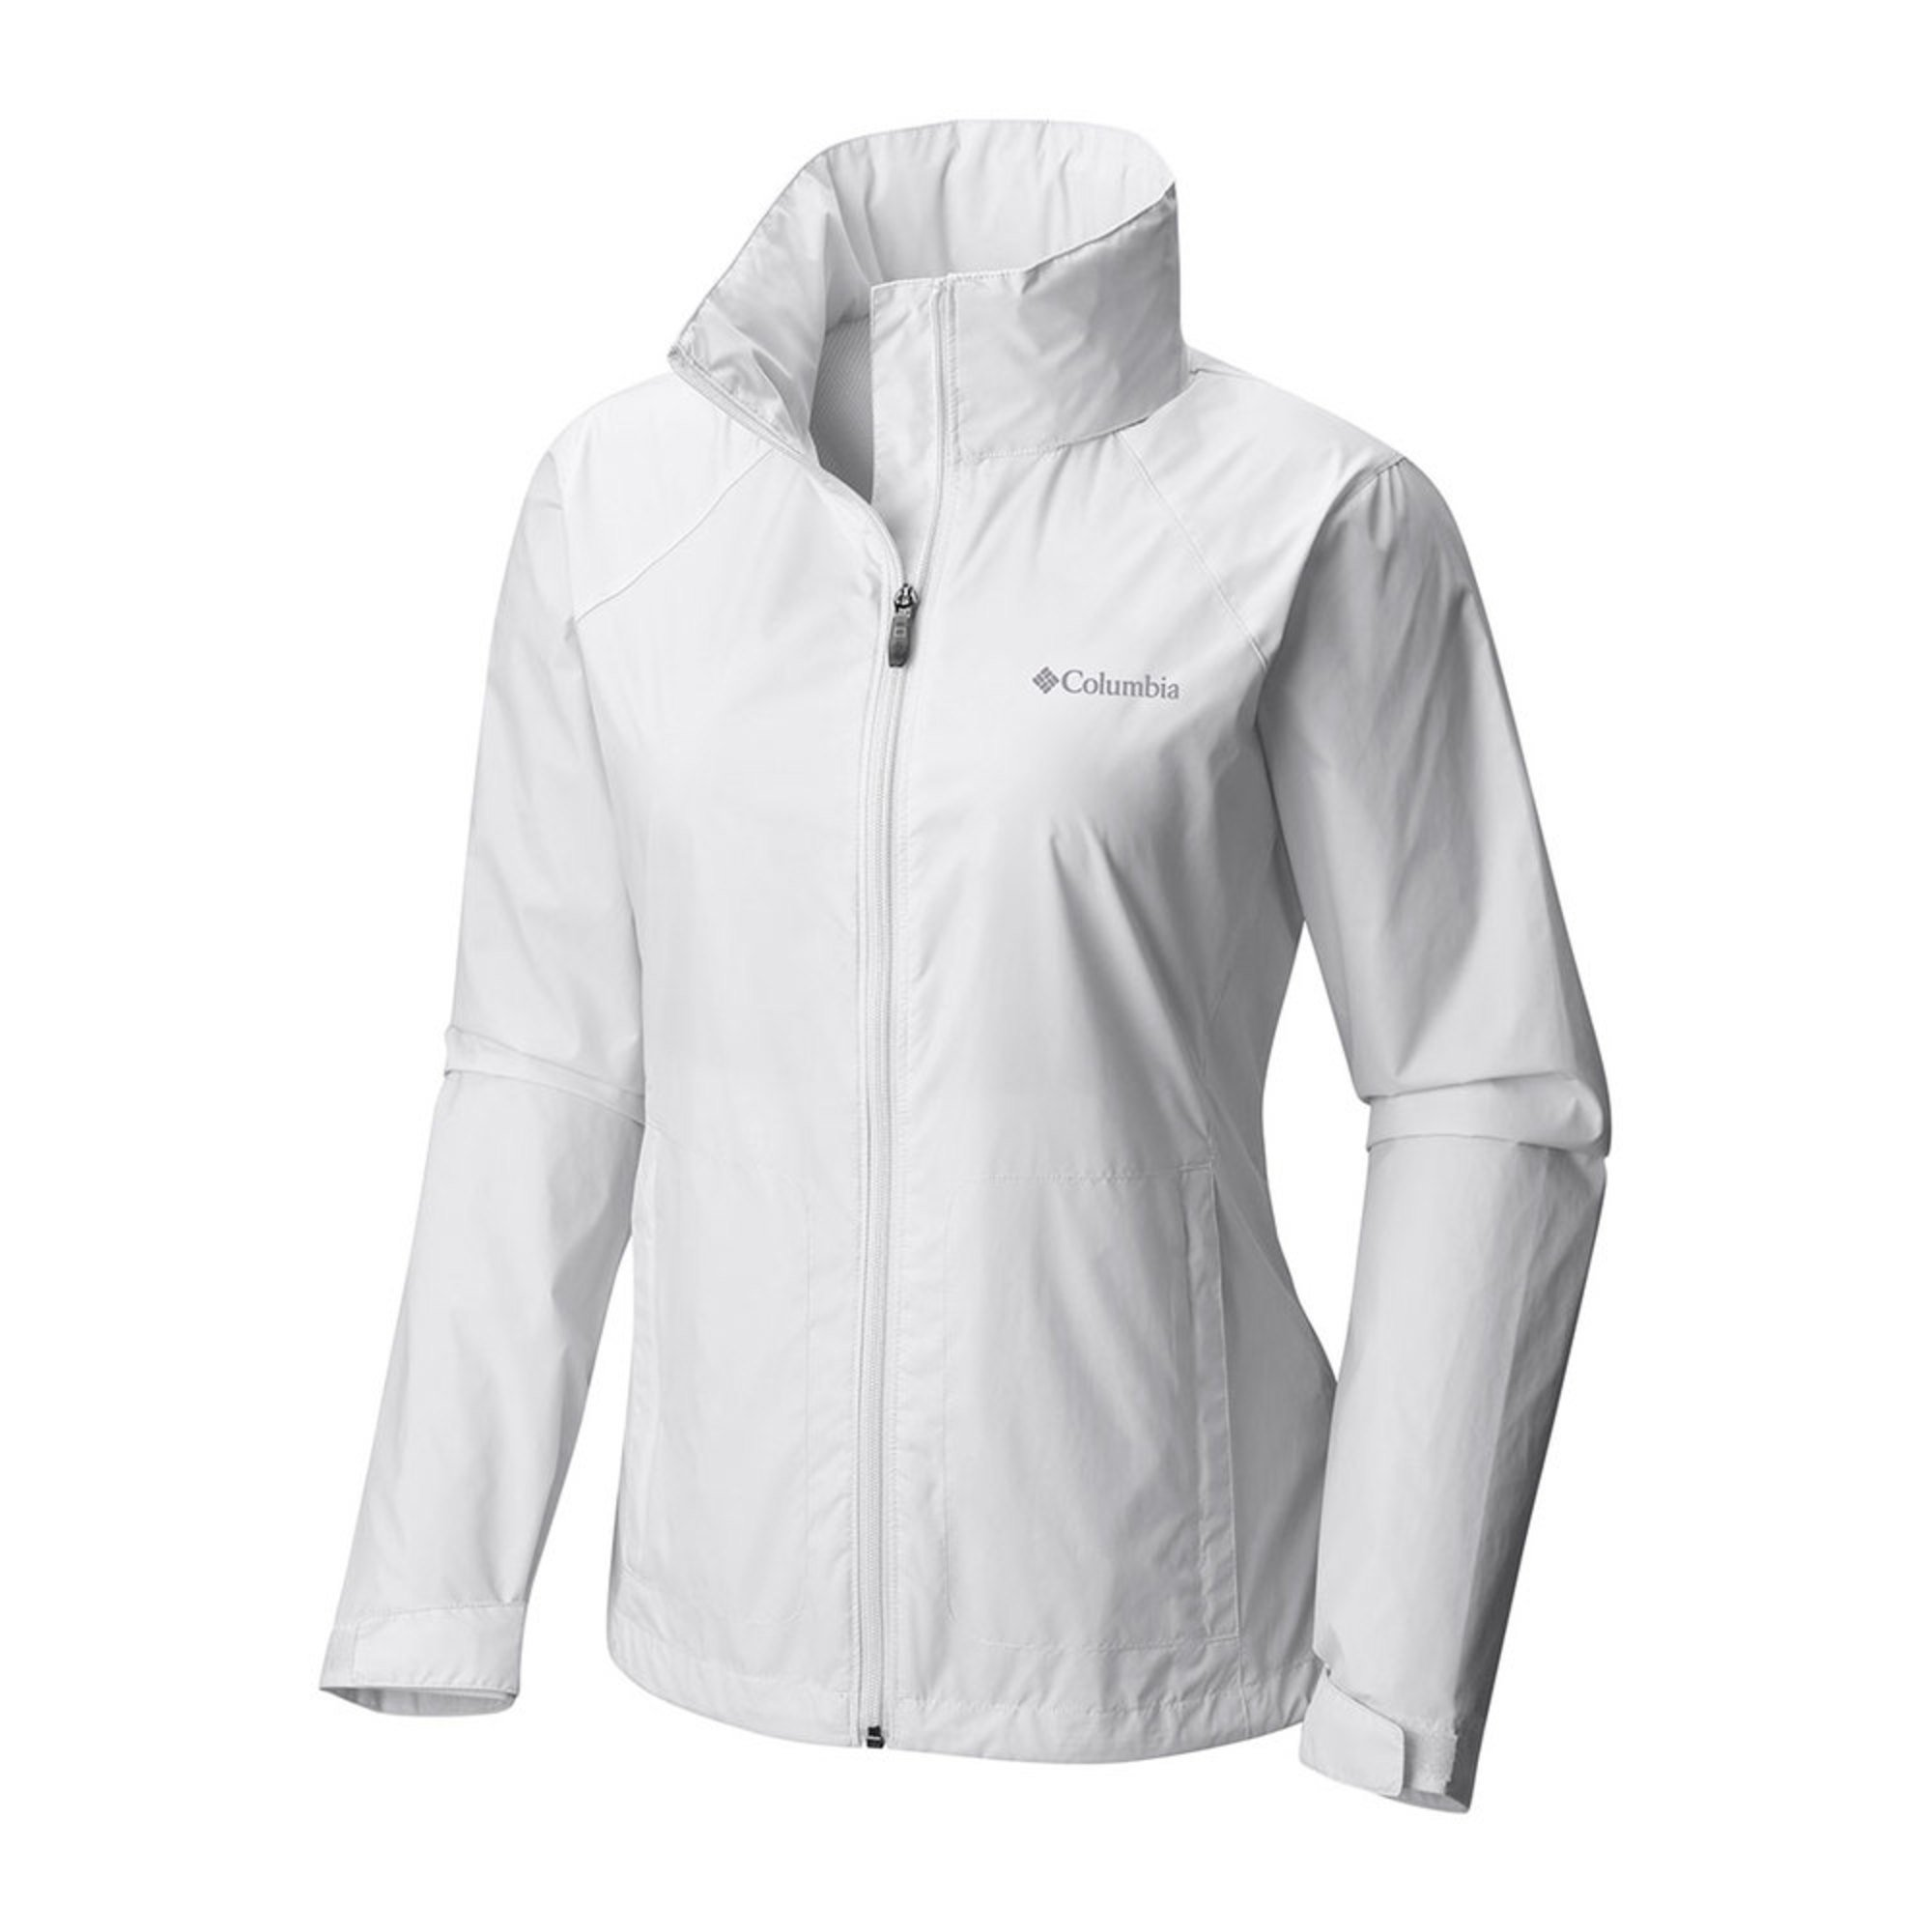 615129a04 Columbia Women's Switchback Ii Hooded Rain Jacket | Outdoor Jackets ...